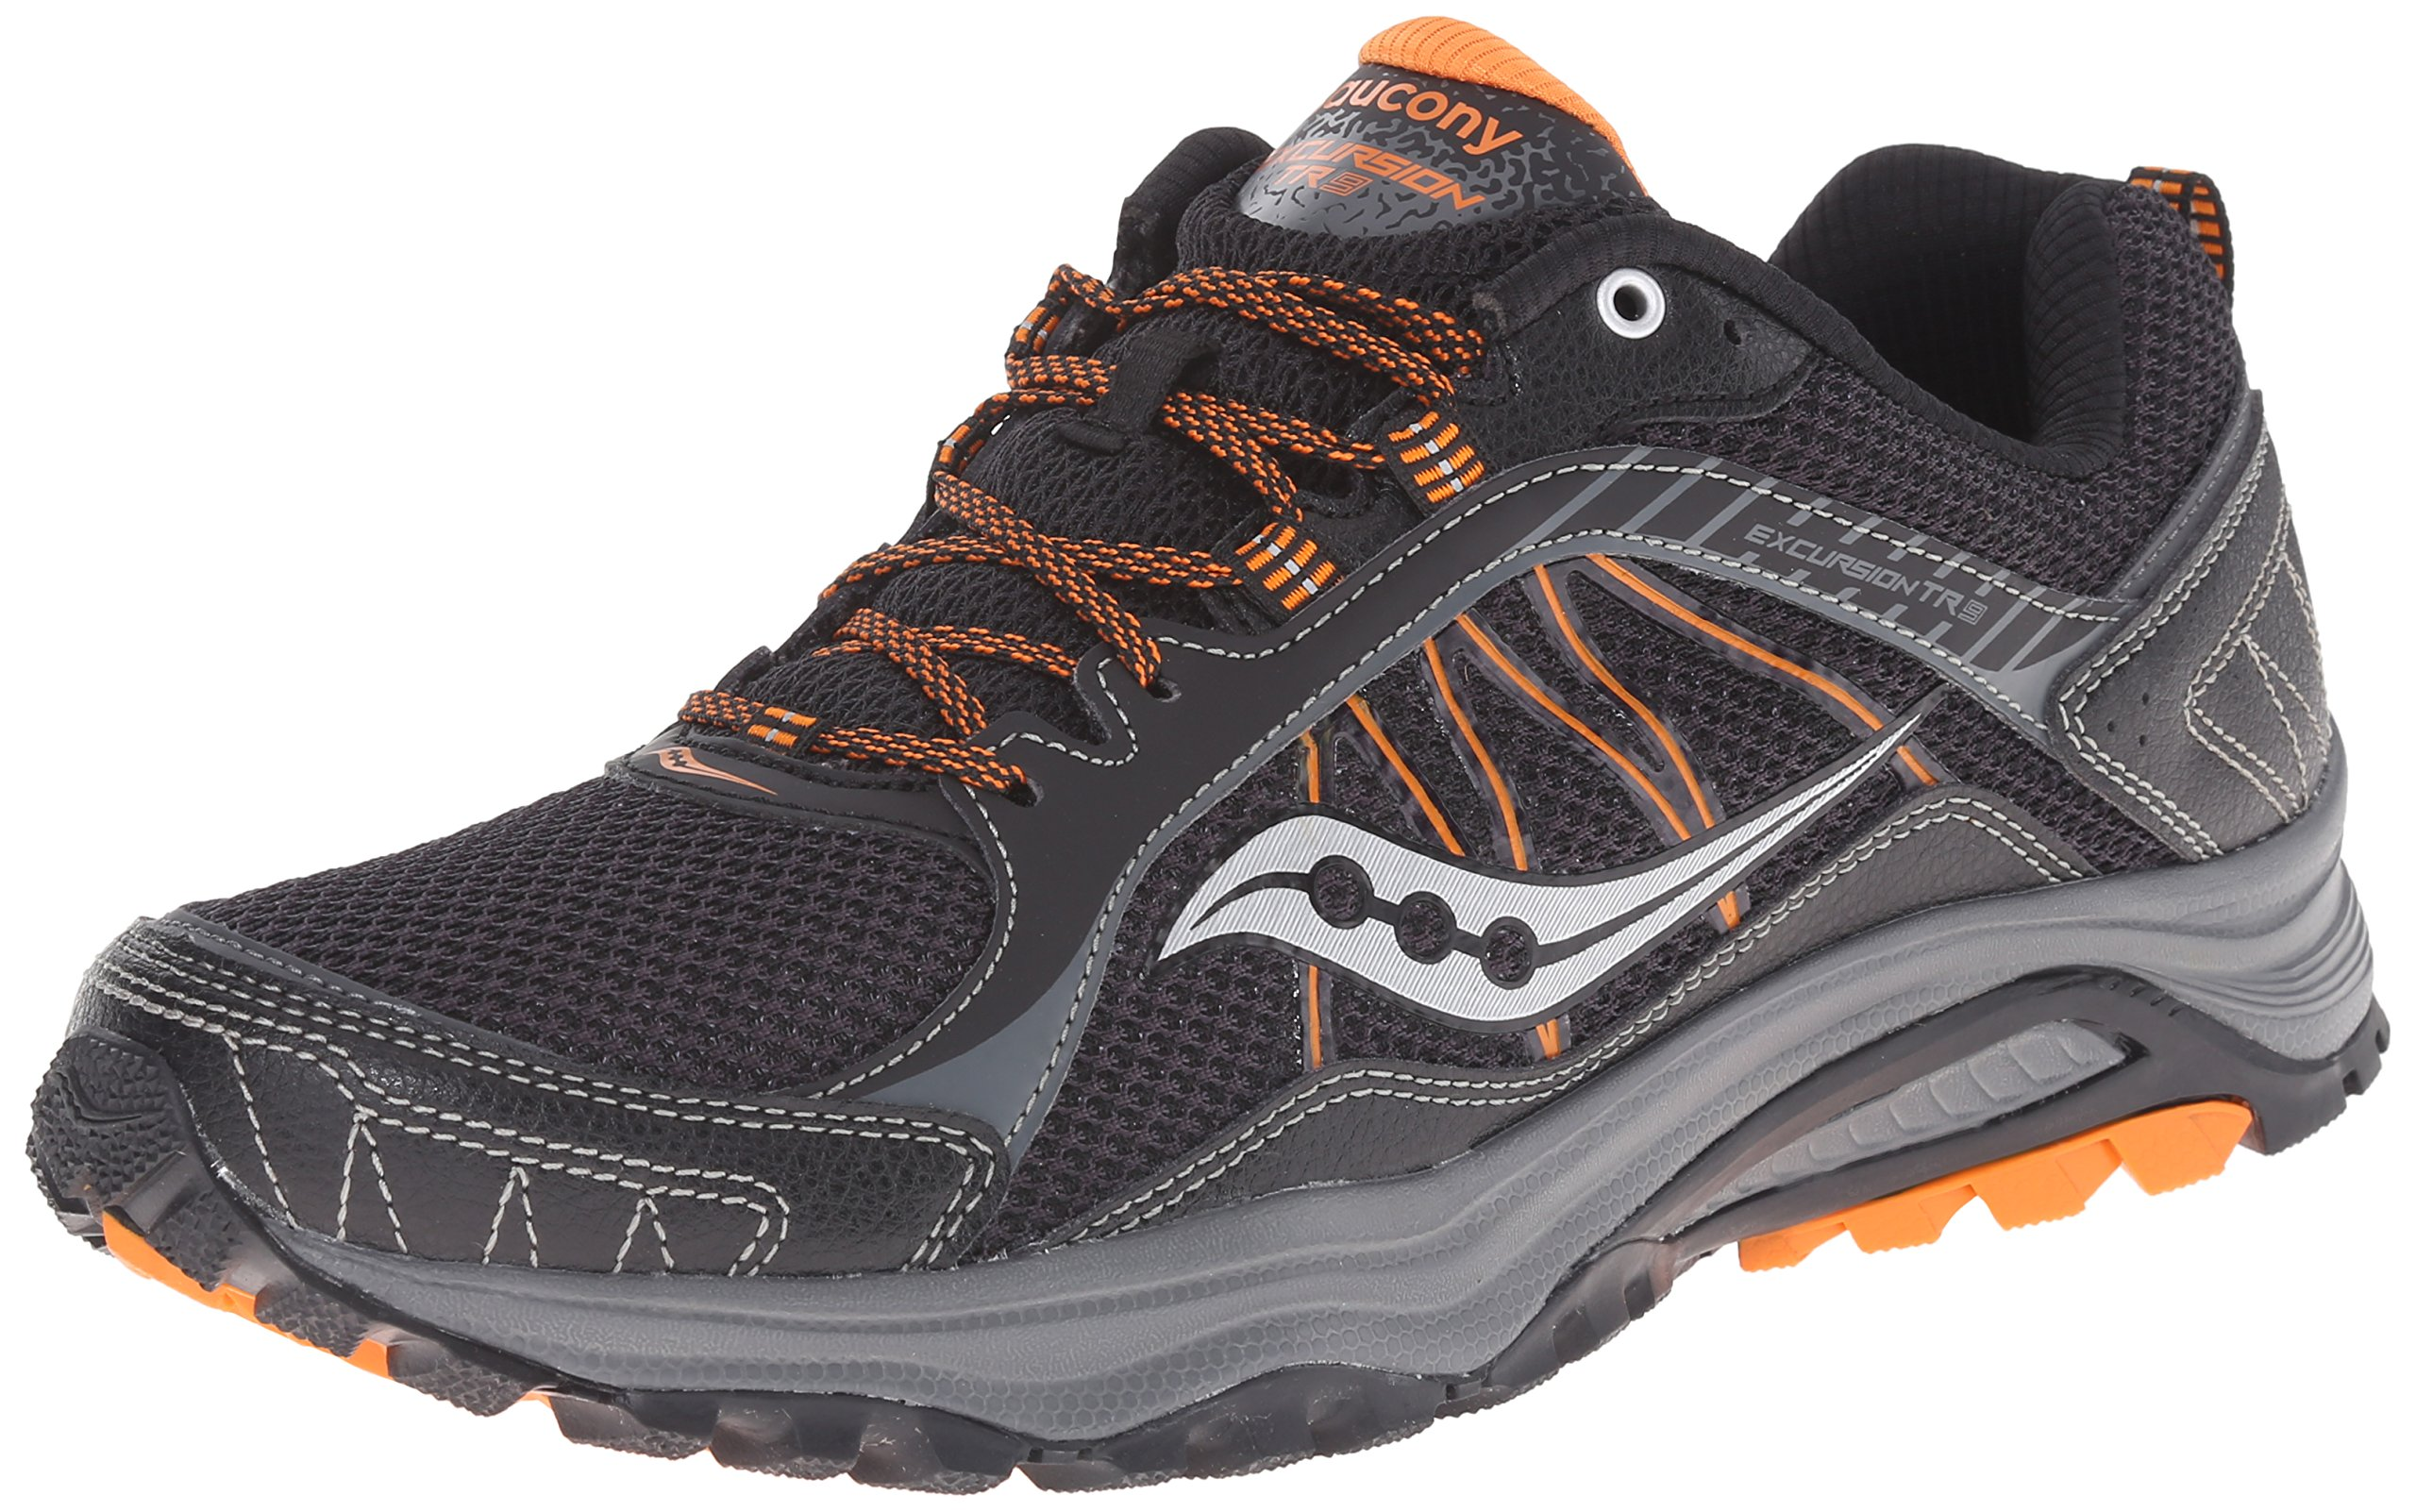 Saucony Men's Grid Excursion TR9 Running Shoe, Black/Orange, 8 M US